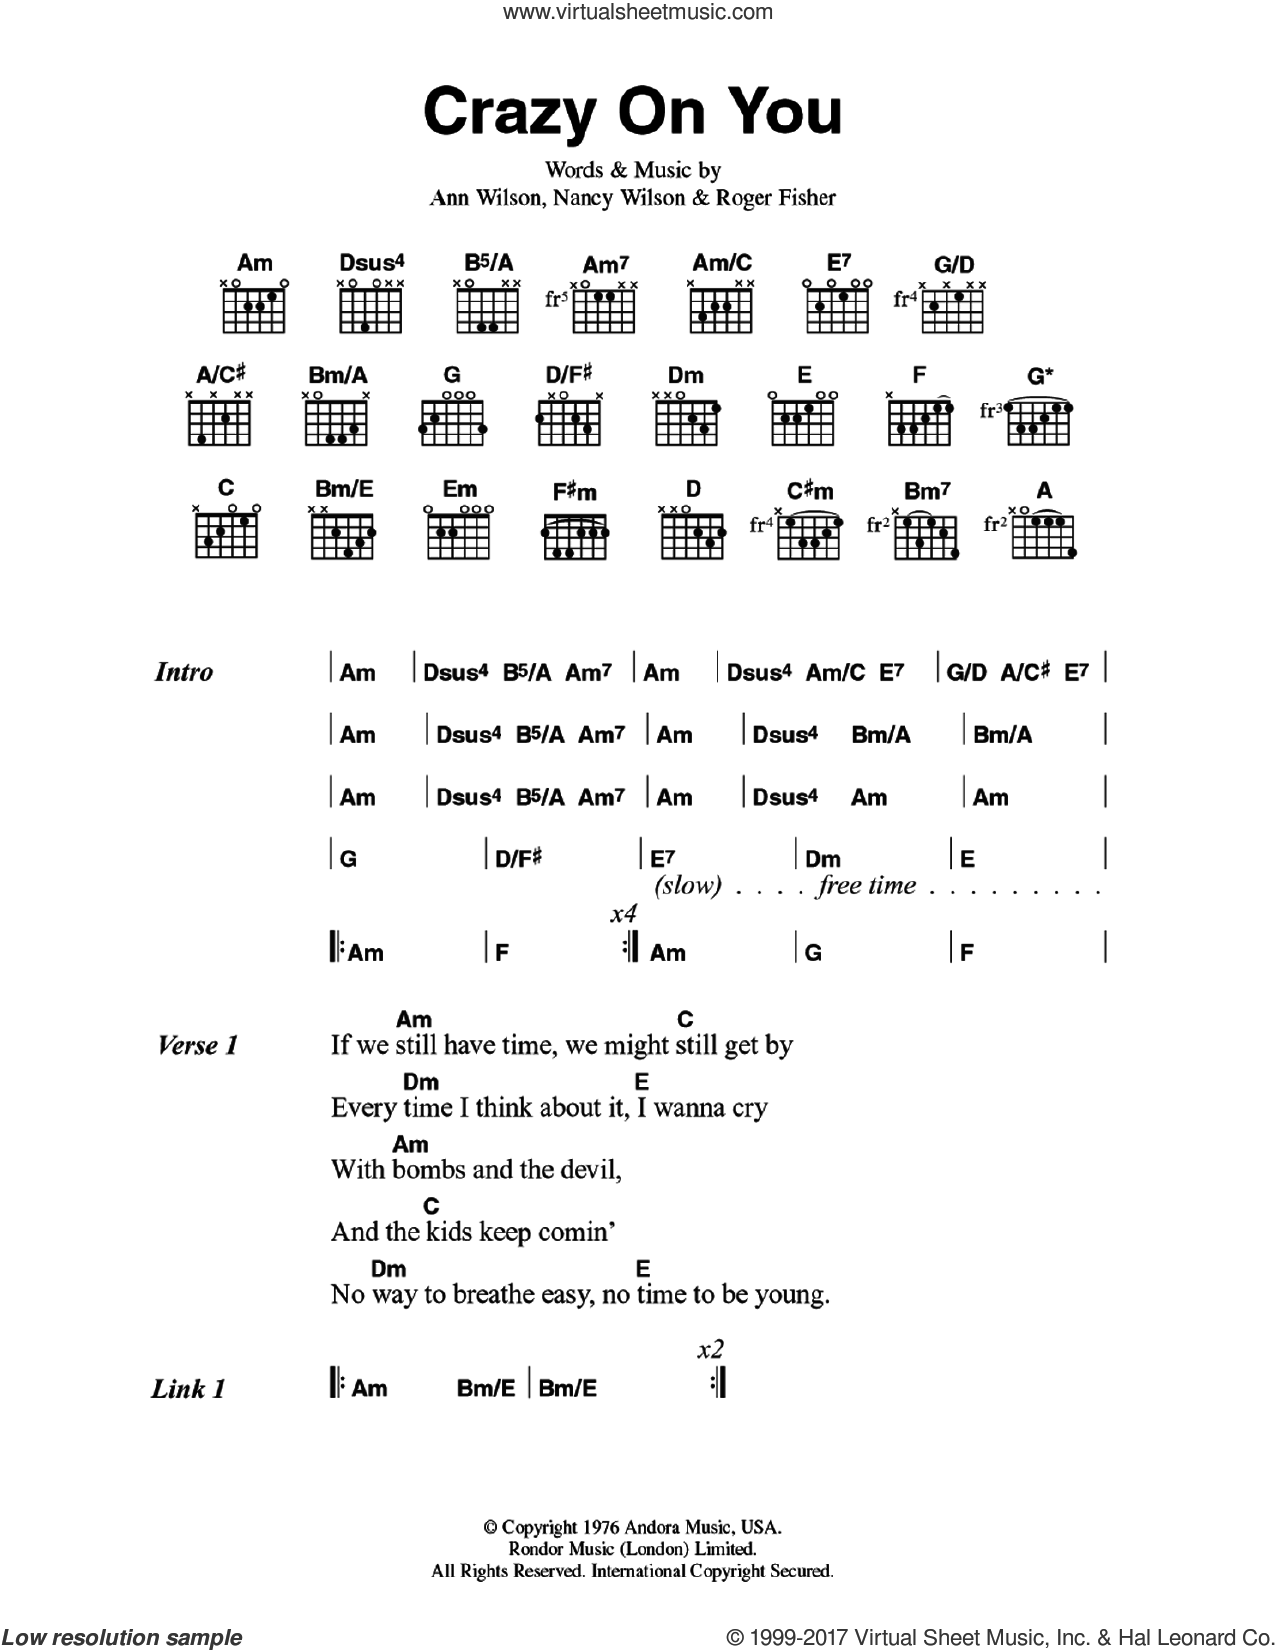 Crazy On You sheet music for guitar (chords) by Heart, Ann Wilson, Nancy Wilson and Roger Fisher, intermediate skill level